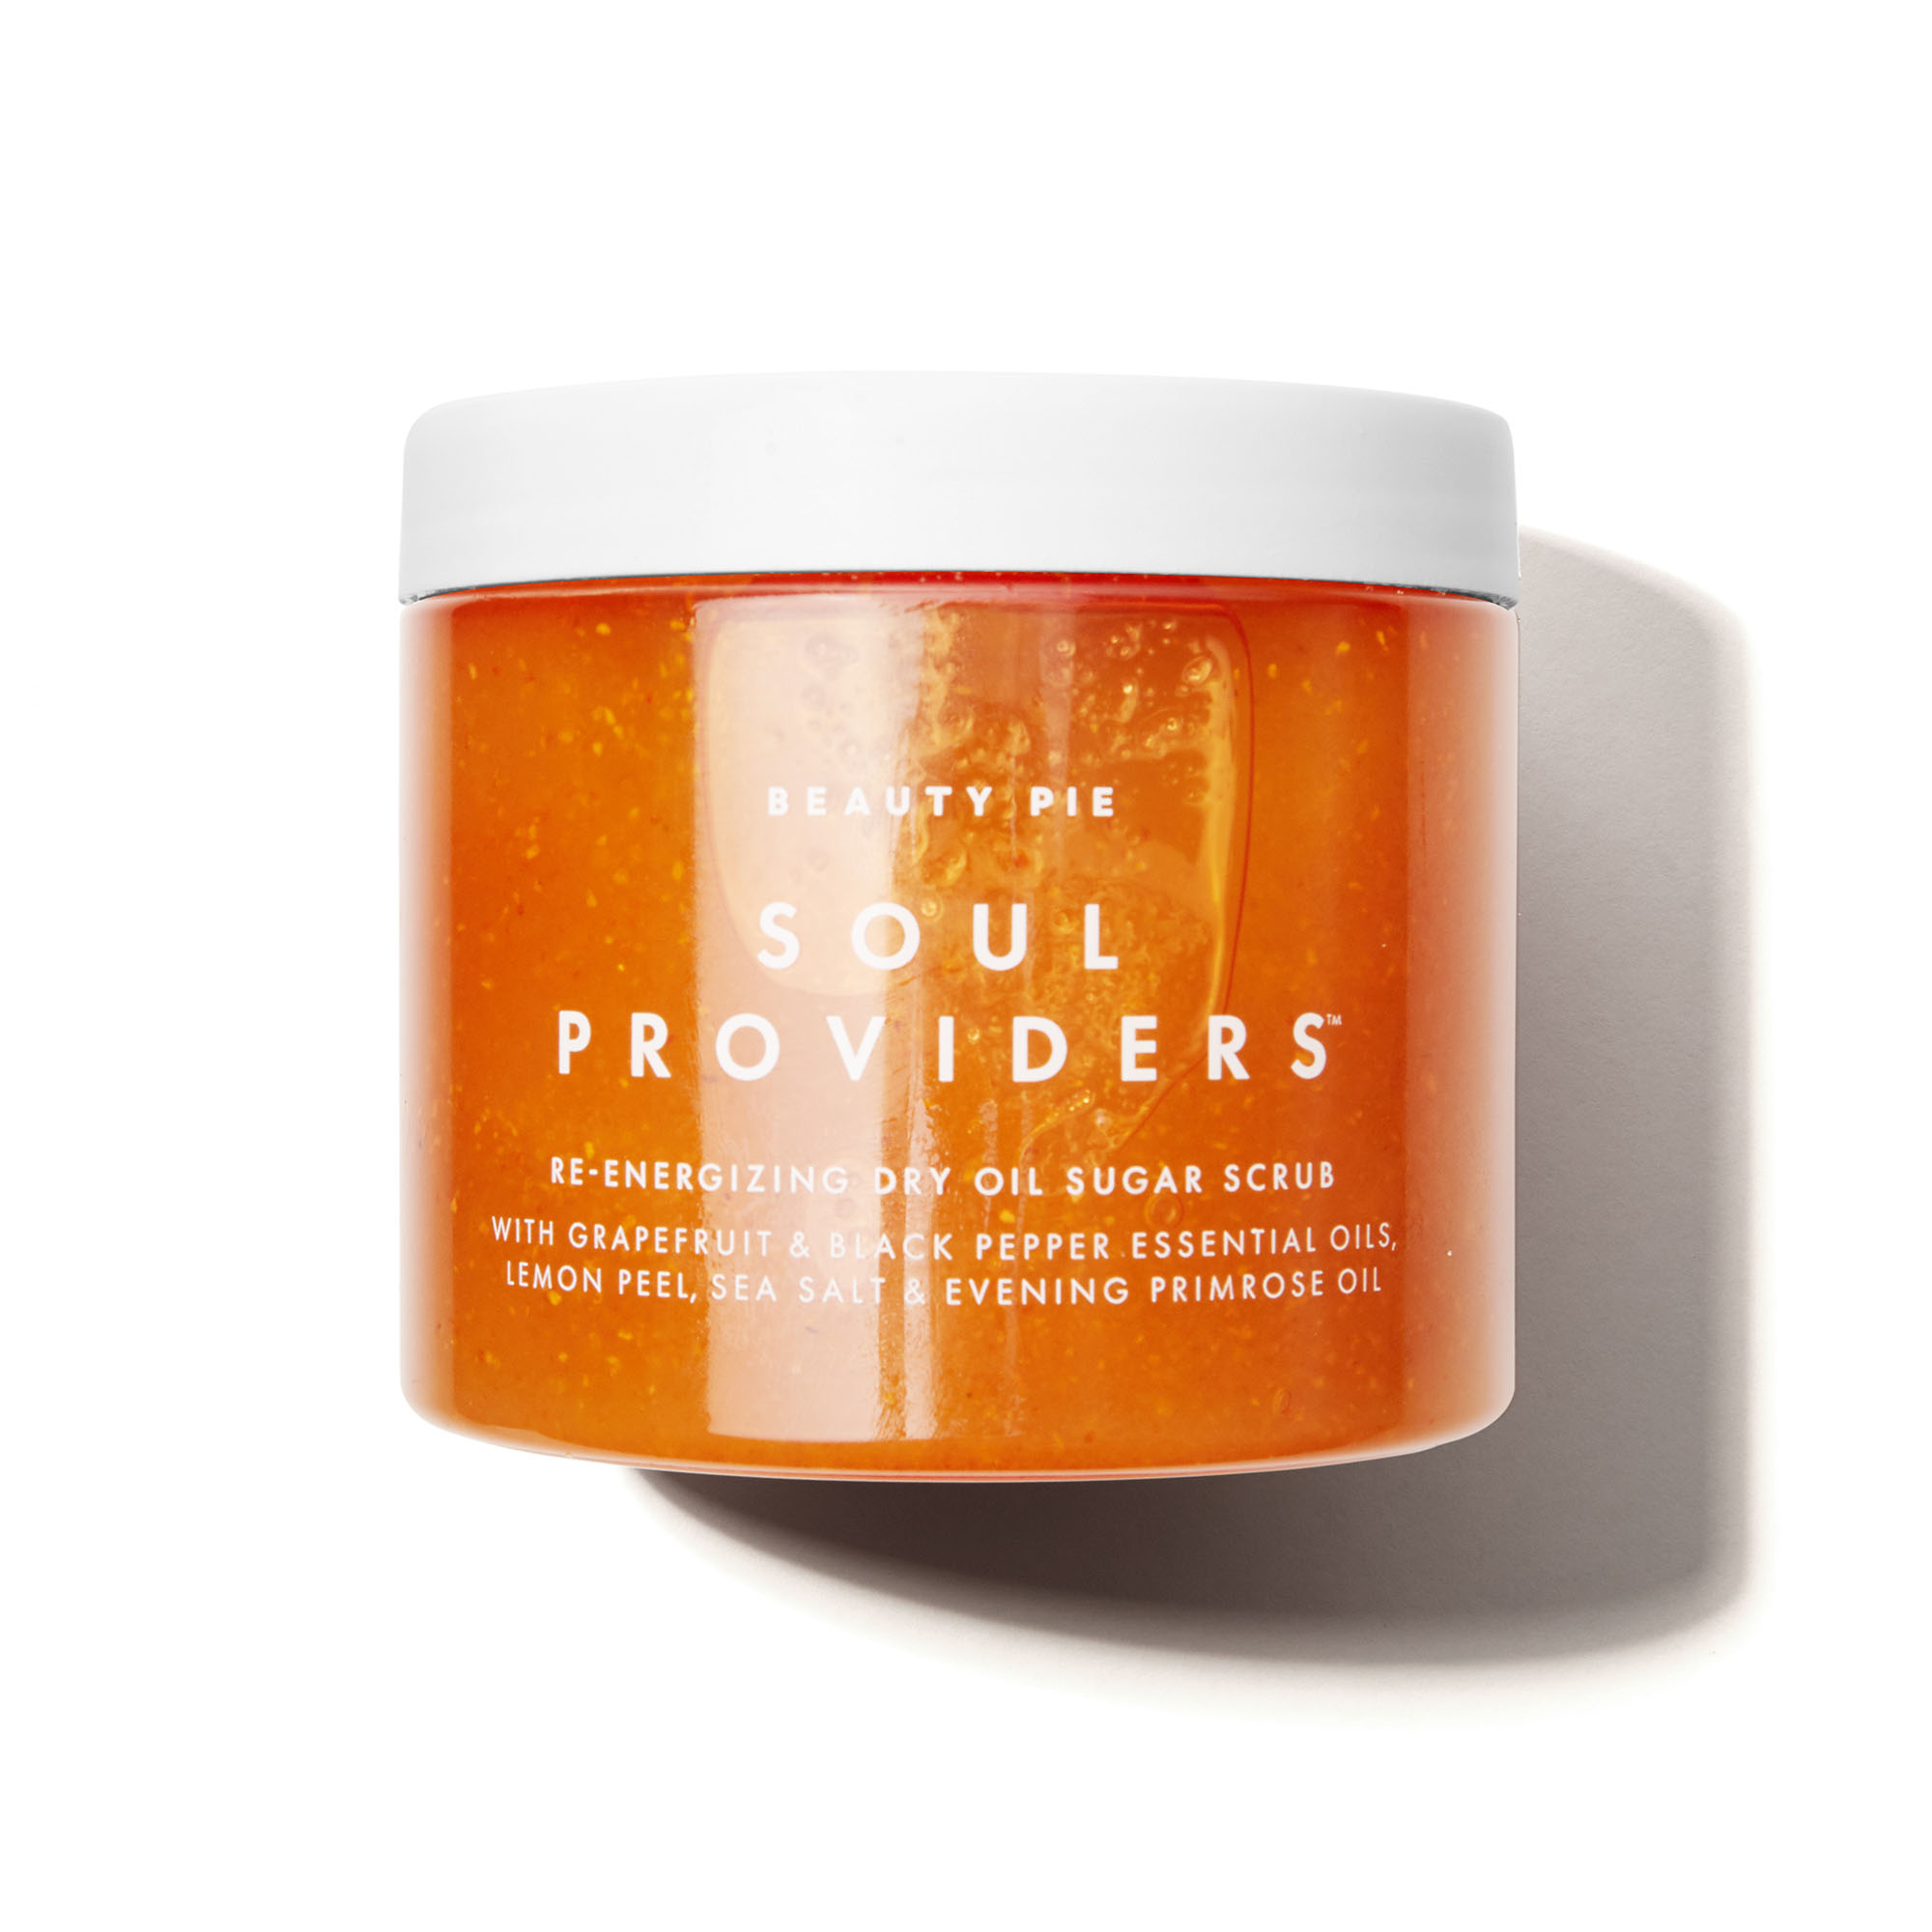 Soul Providers Dry Oil Scrub by Beauty Pie